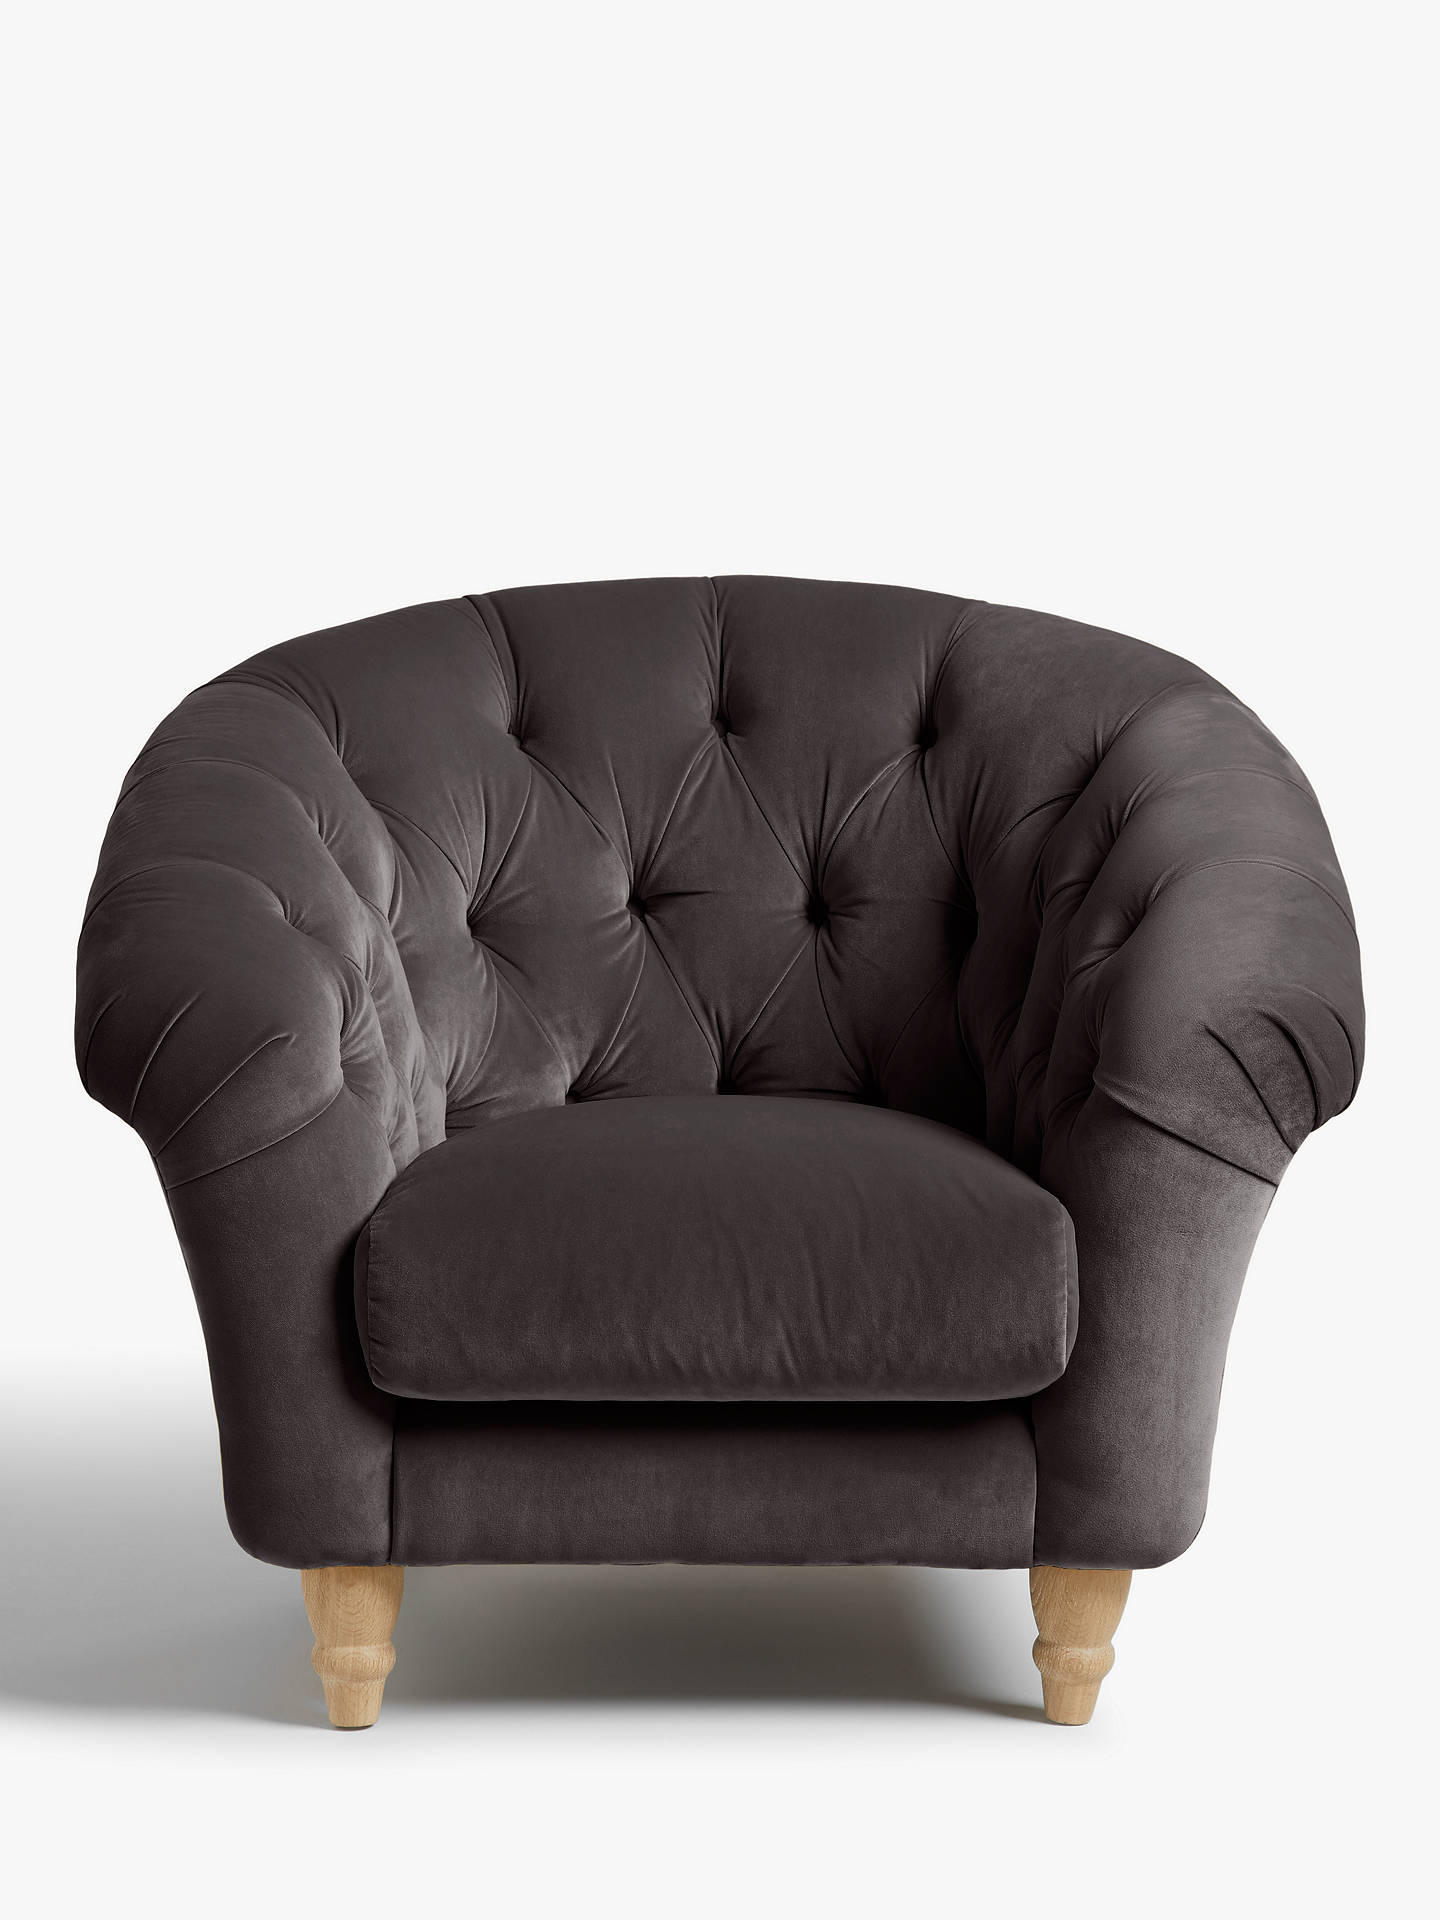 Buy Cupcake Armchair by Loaf at John Lewis, Clever Velvet Steel Online at johnlewis.com